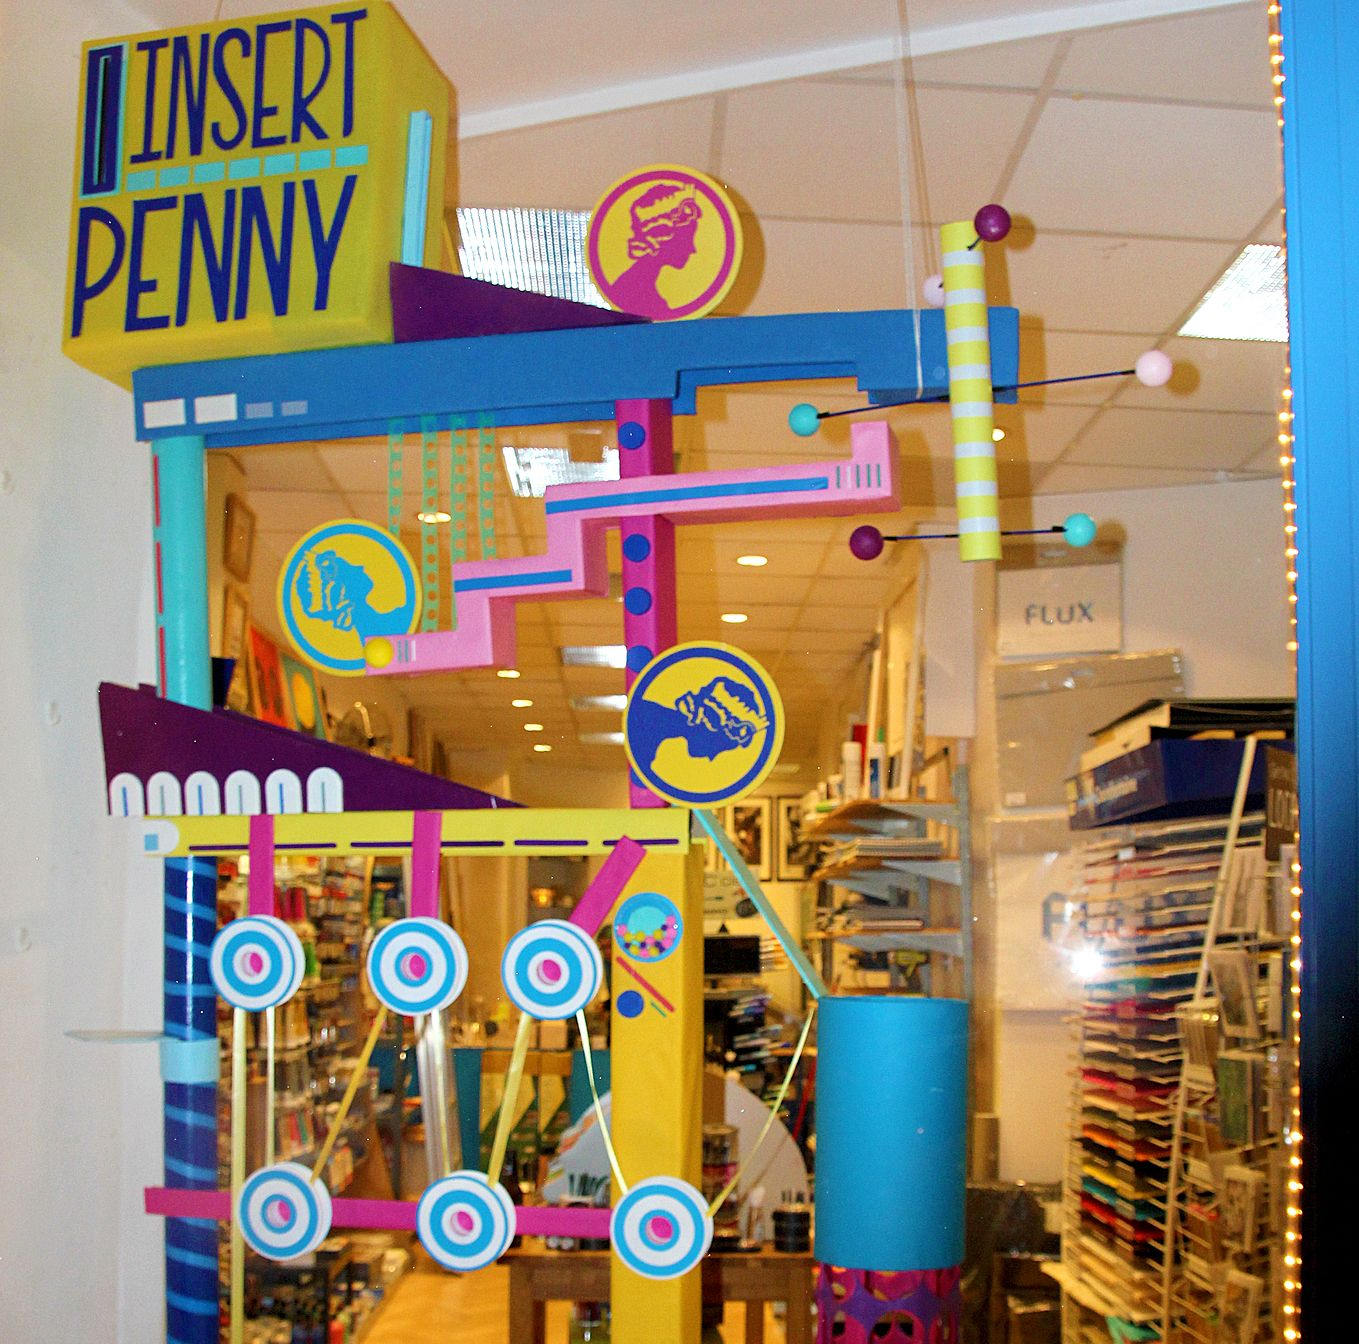 Kristi Minchin is our current window artist. We love her arcade game inspired creation.